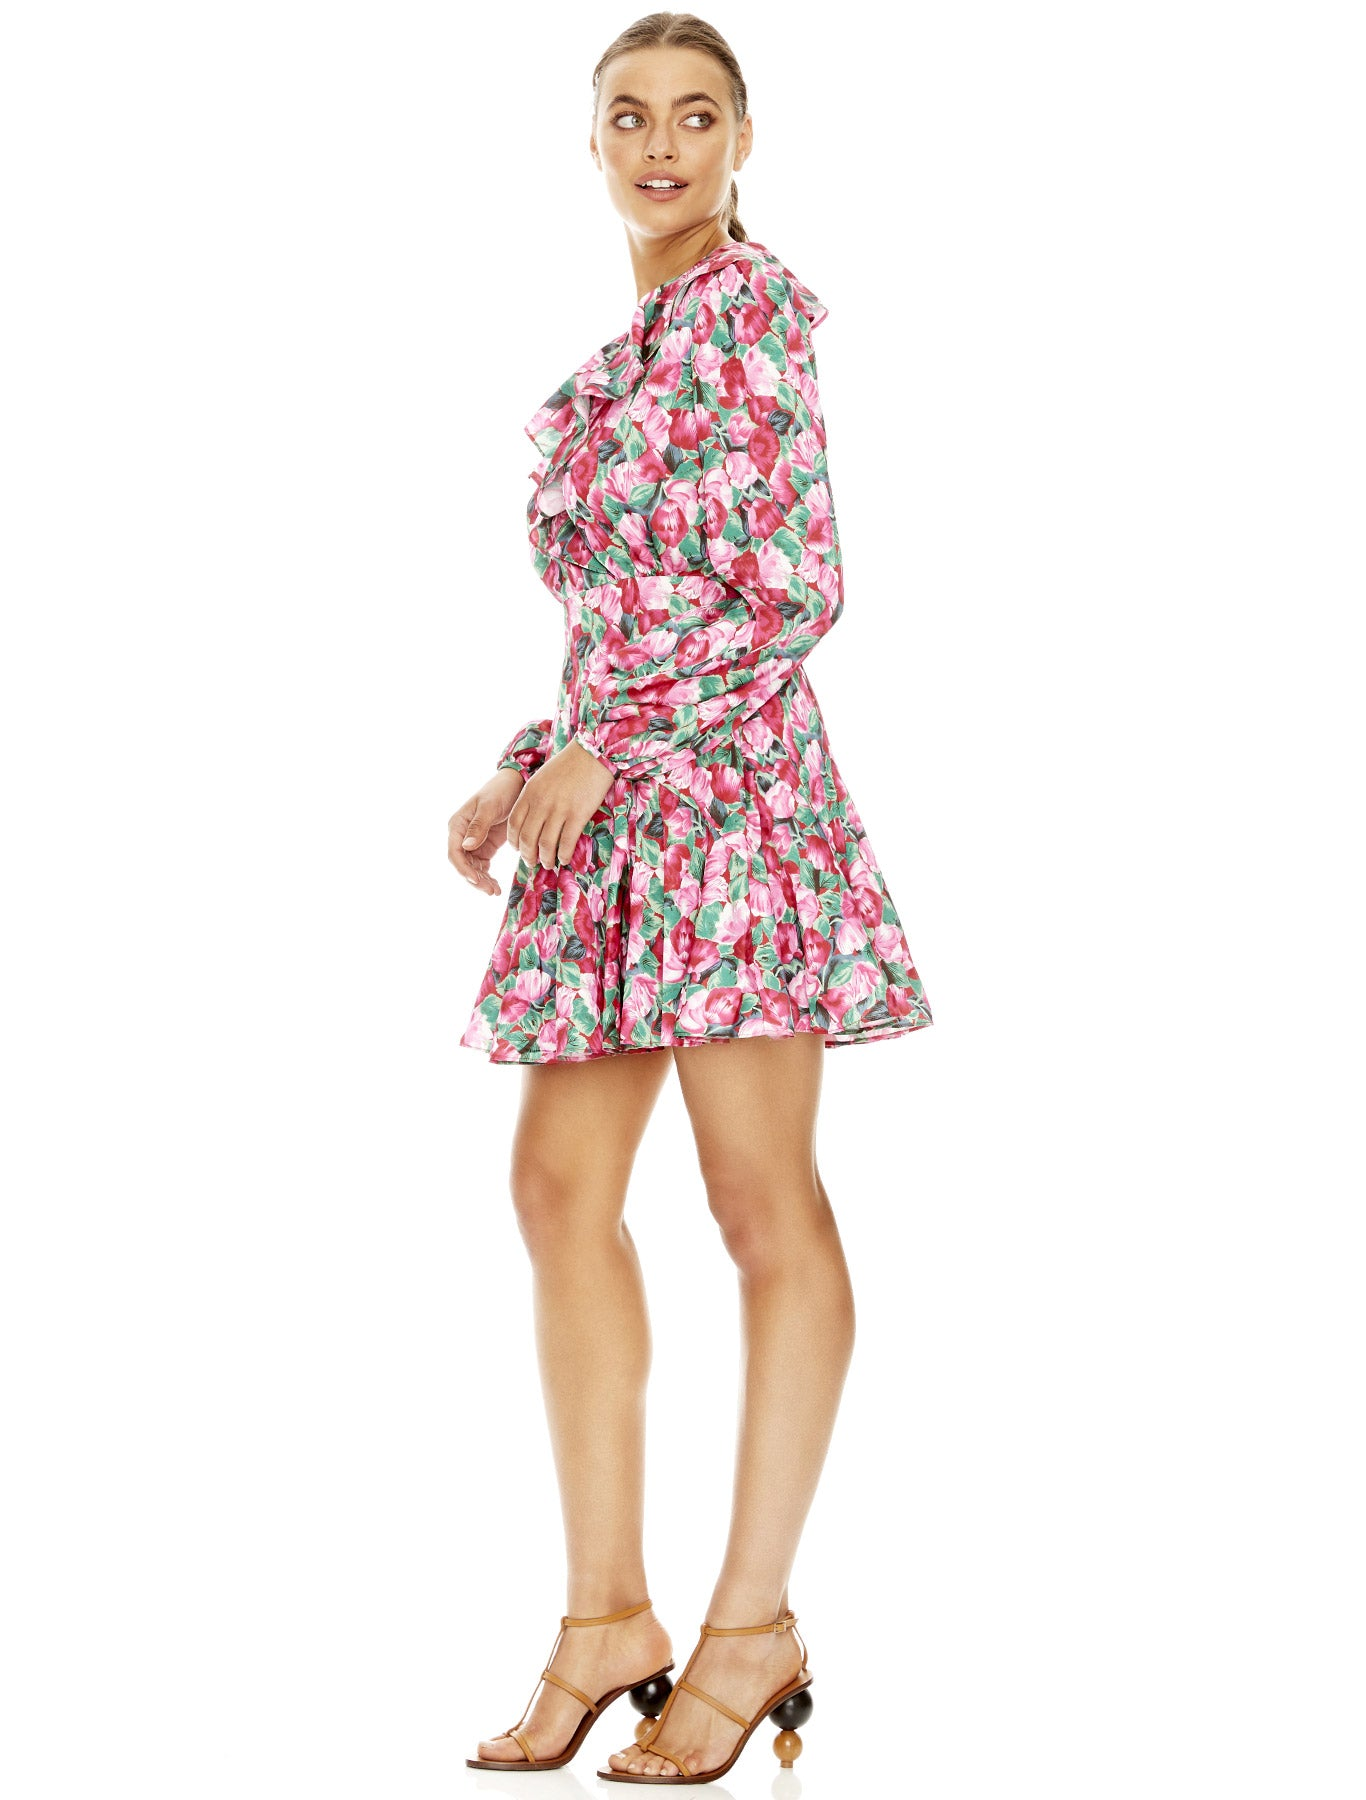 THE HEART OF LIFE MINI DRESS